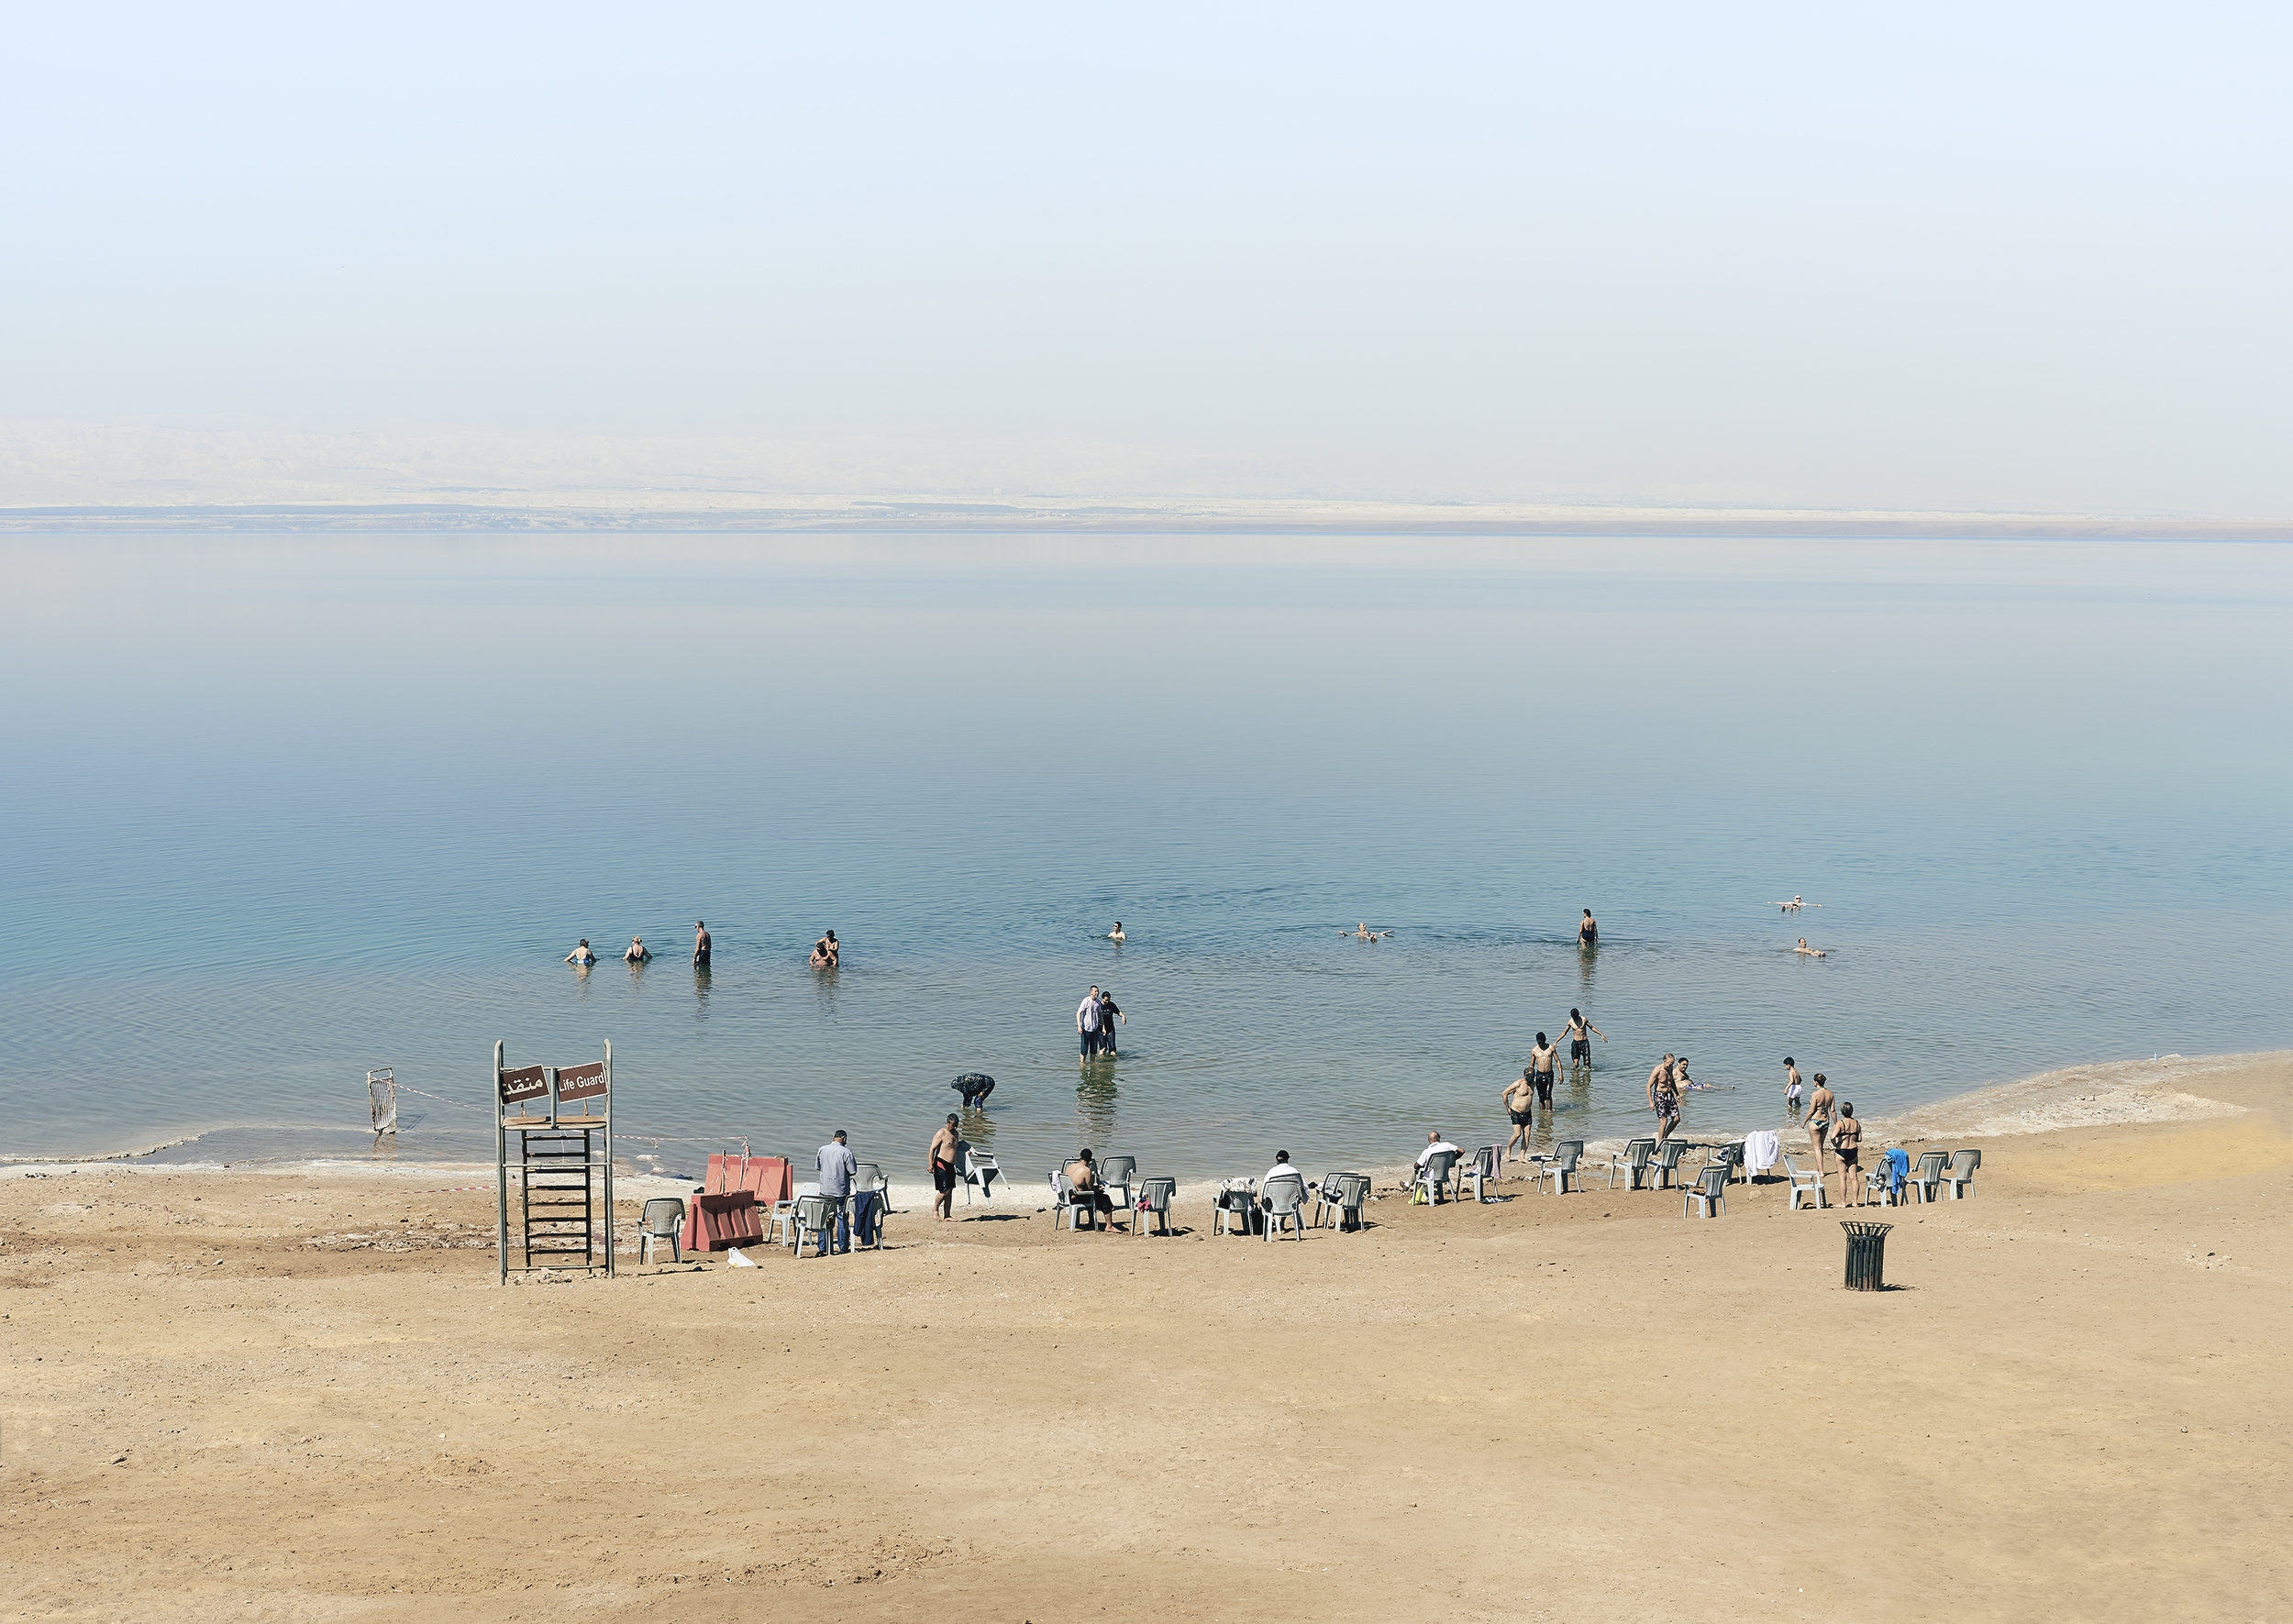 ZO_Beach 4, Dead Sea, Jordan, 2013.jpg